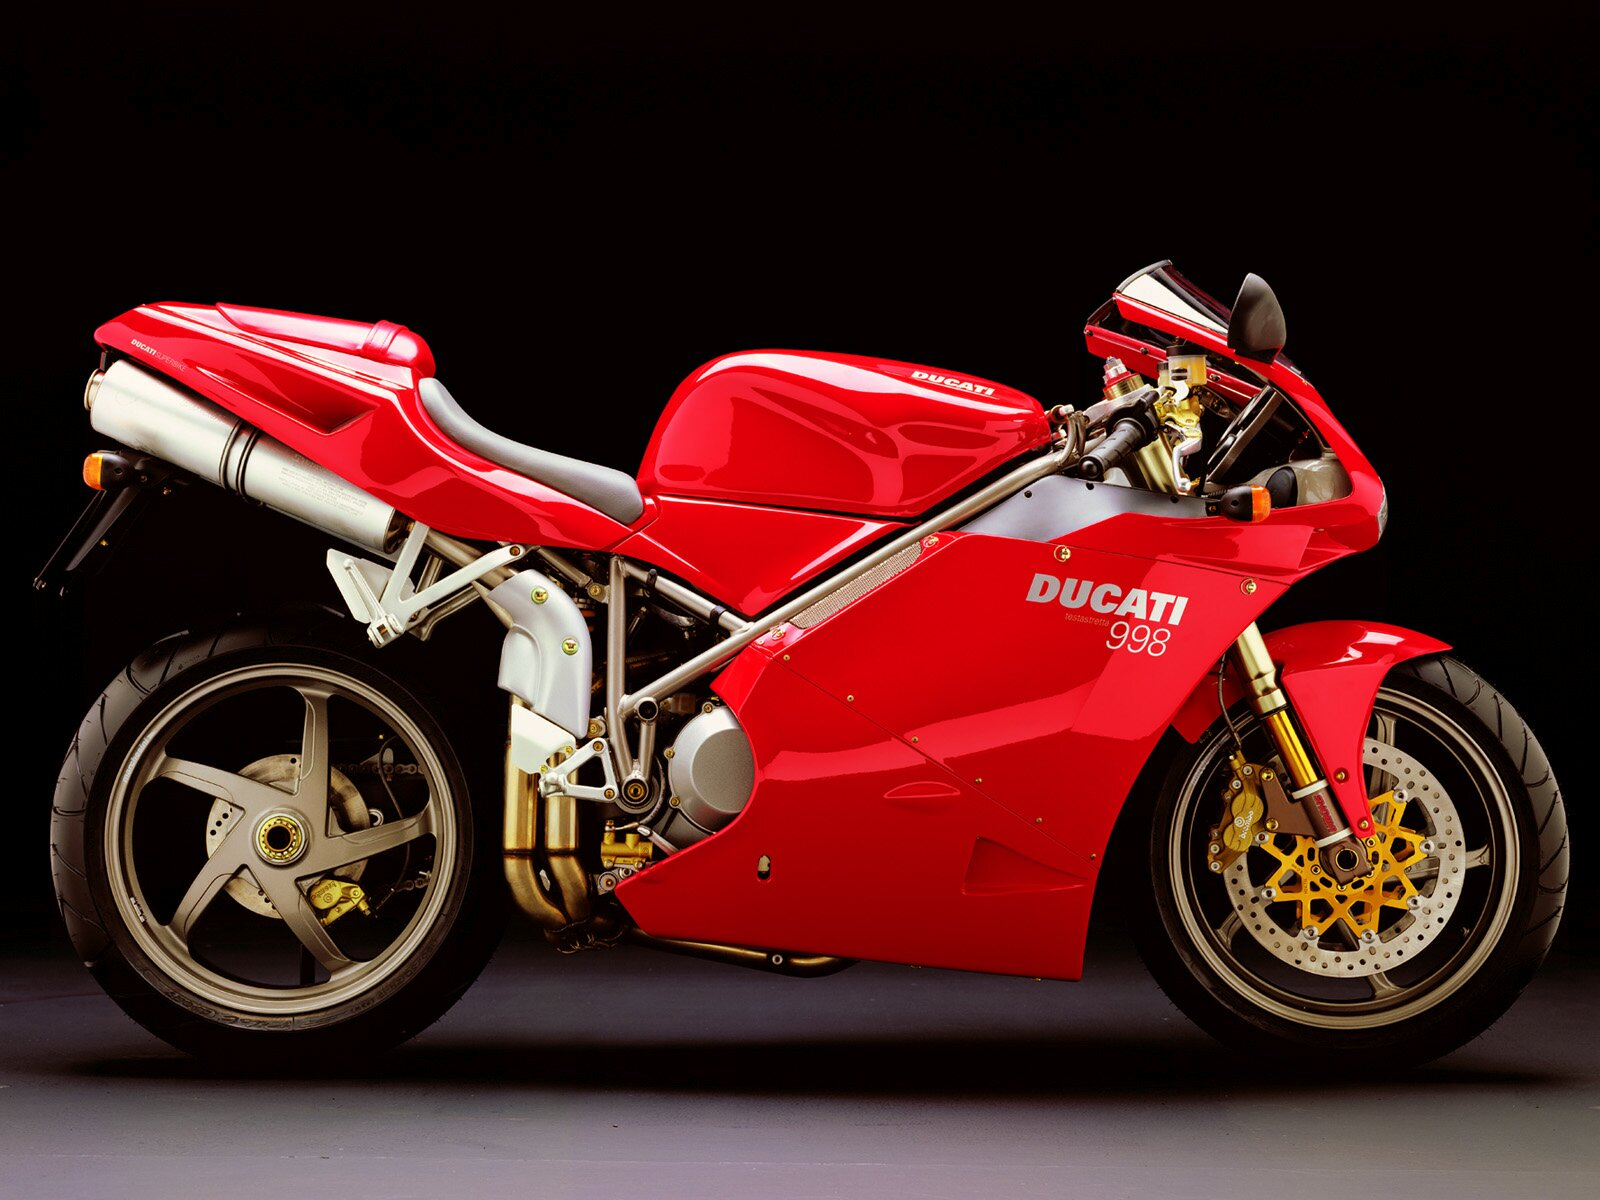 Ducati 998 2004 wallpapers #11995